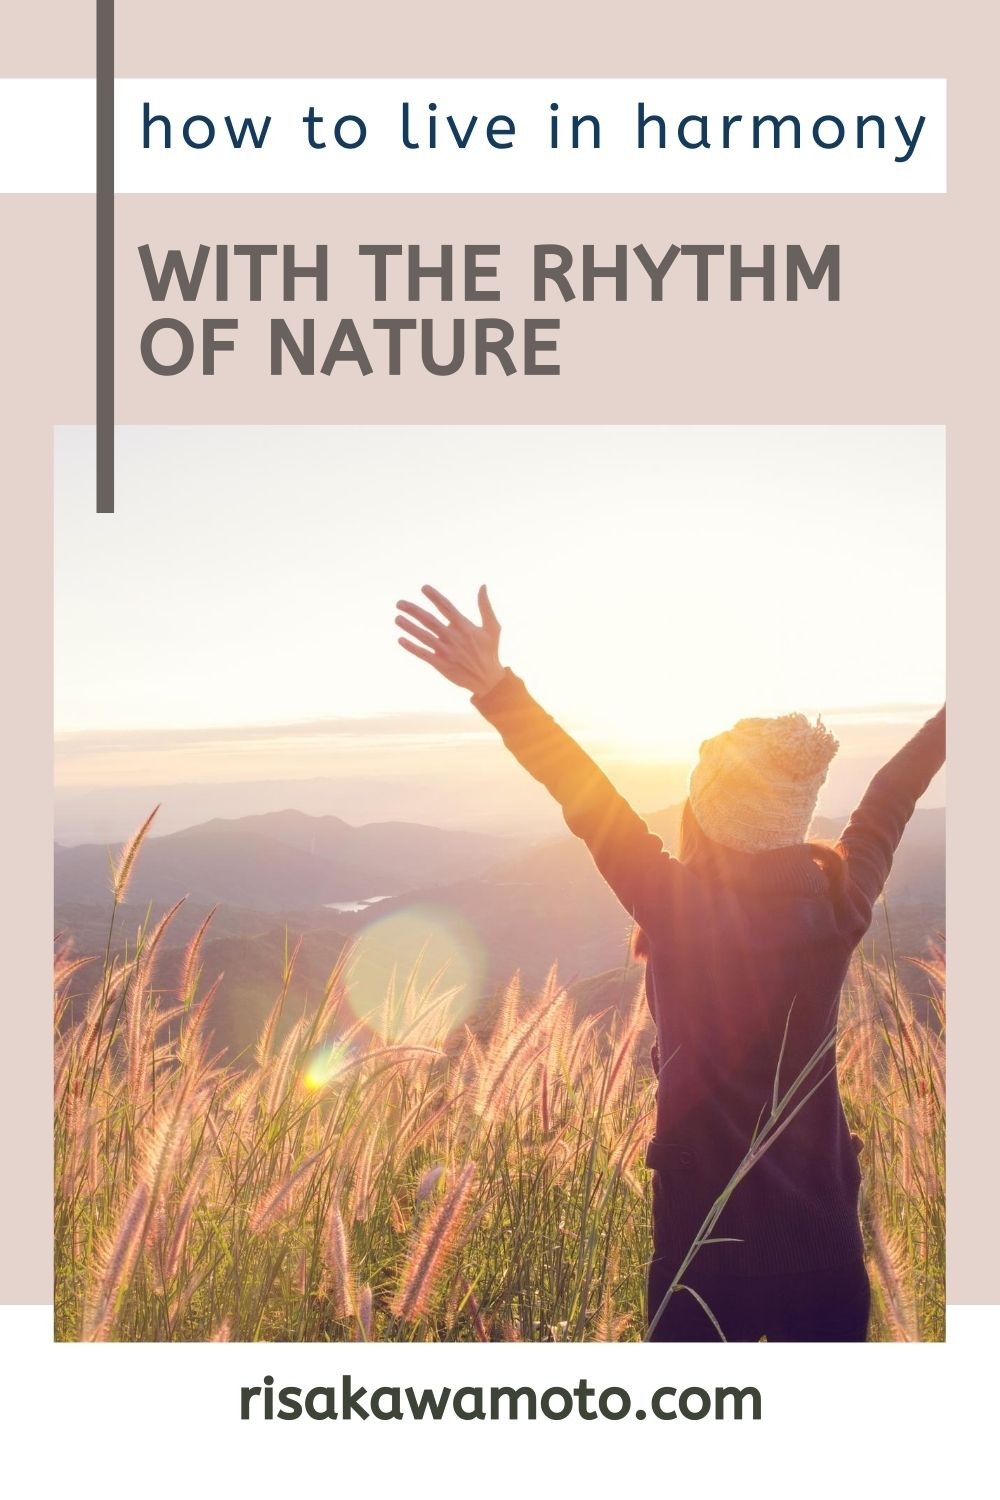 How to Live in Harmony with the Rhythm of Nature - Ayurveda and the Circadian Rhythm